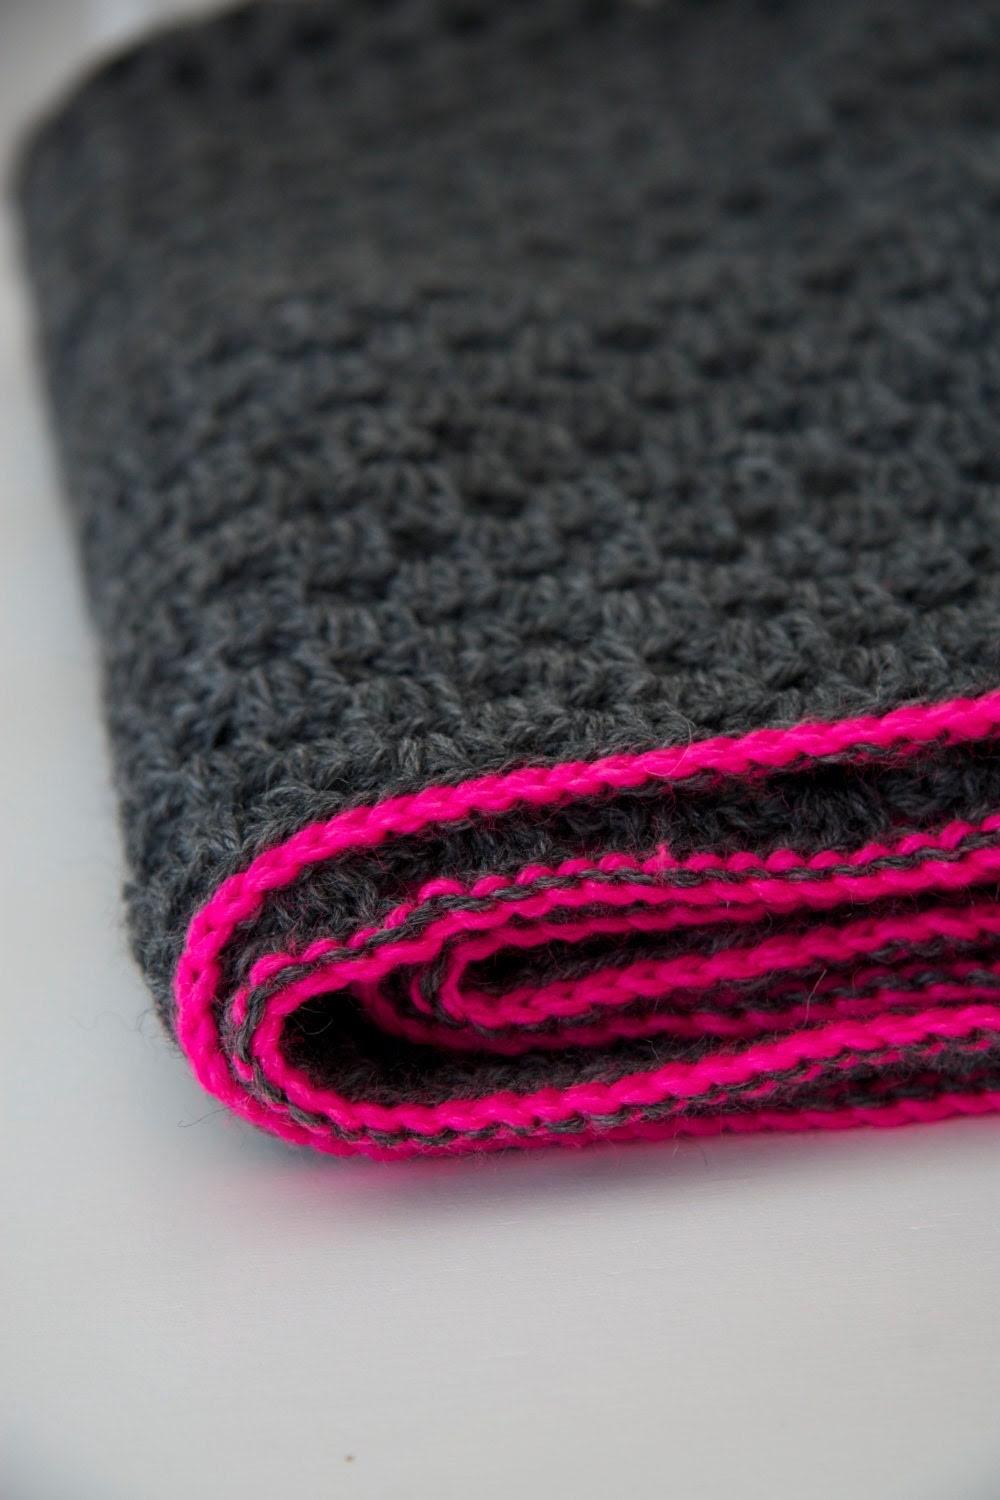 Granny square blanket with neon pink